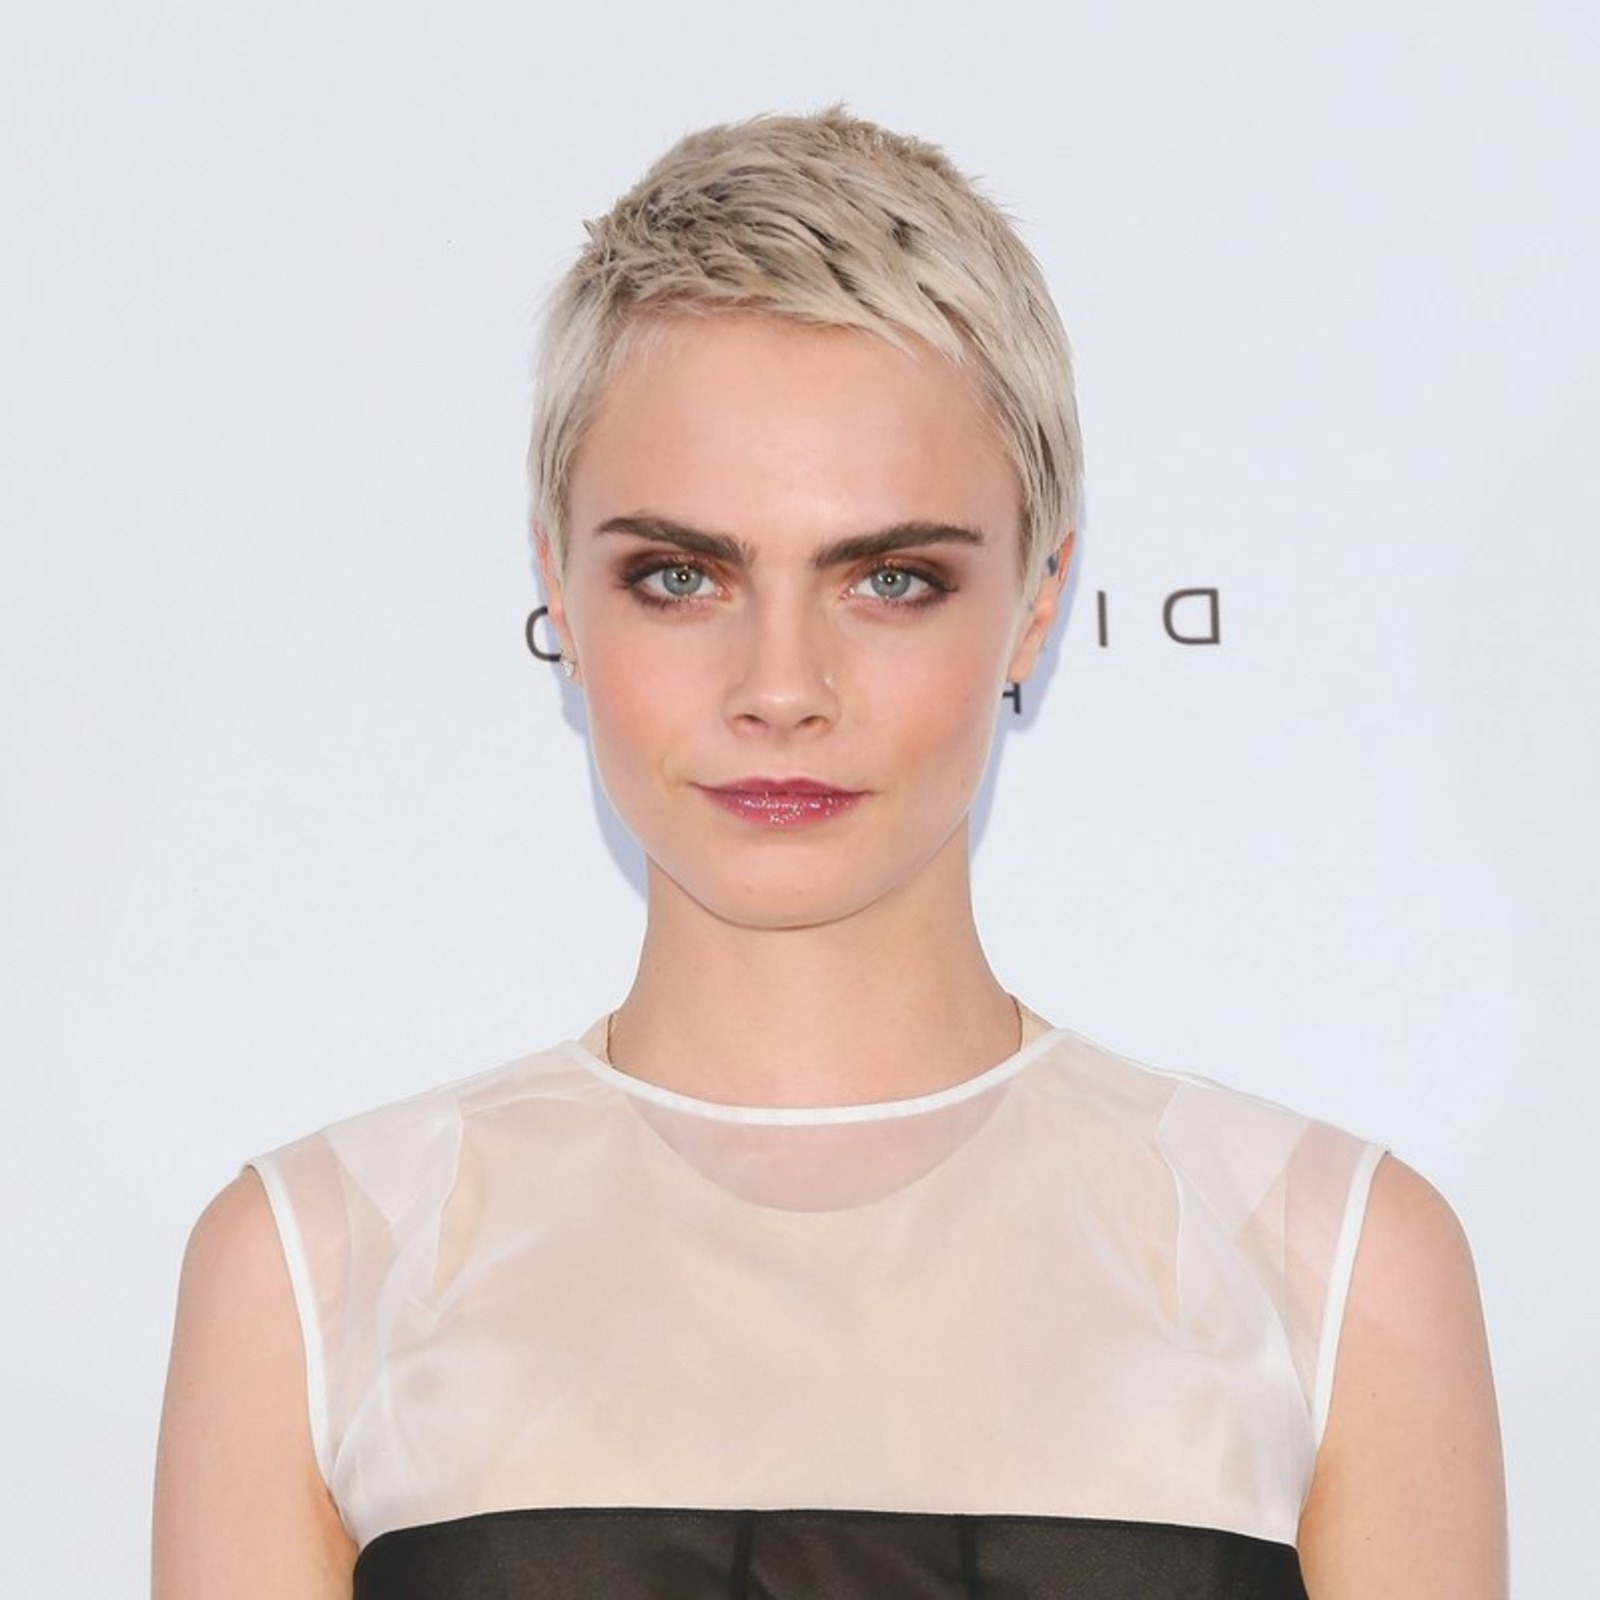 17 Short Haircuts And Hairstyles For Women 2017 – Allure Inside Rebonded Short Hairstyles (View 11 of 25)